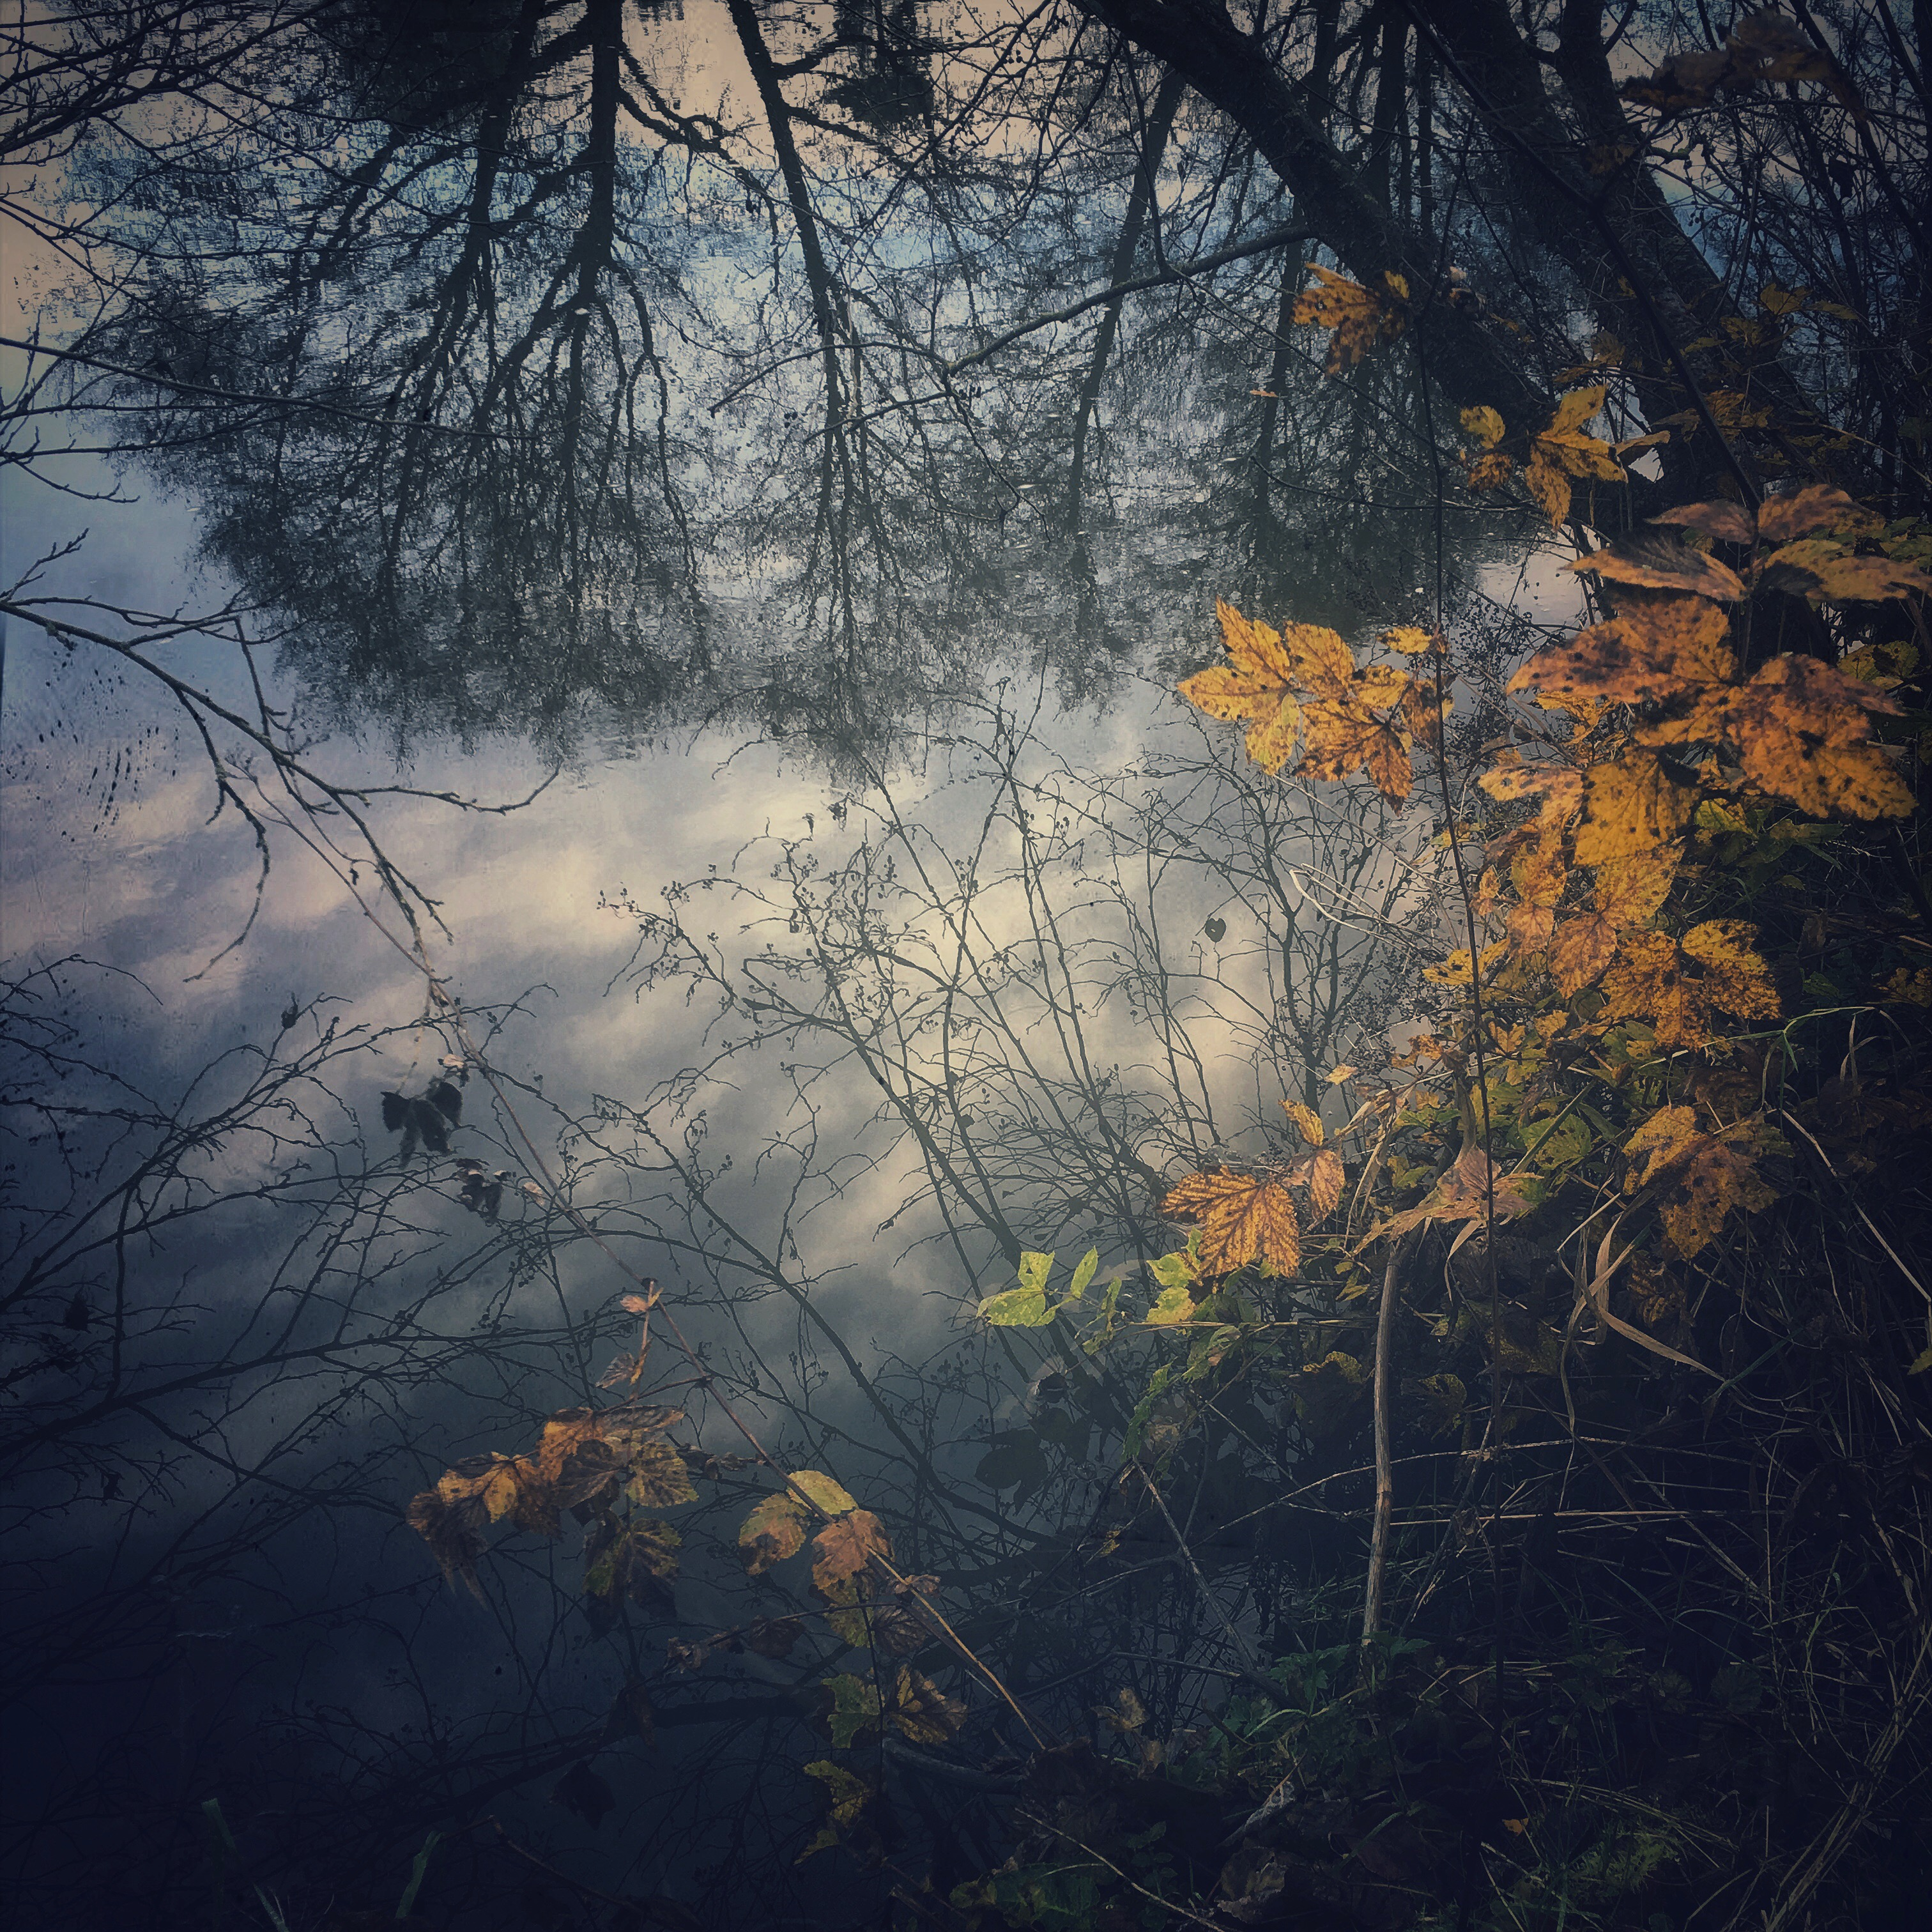 Reflections in the Teme